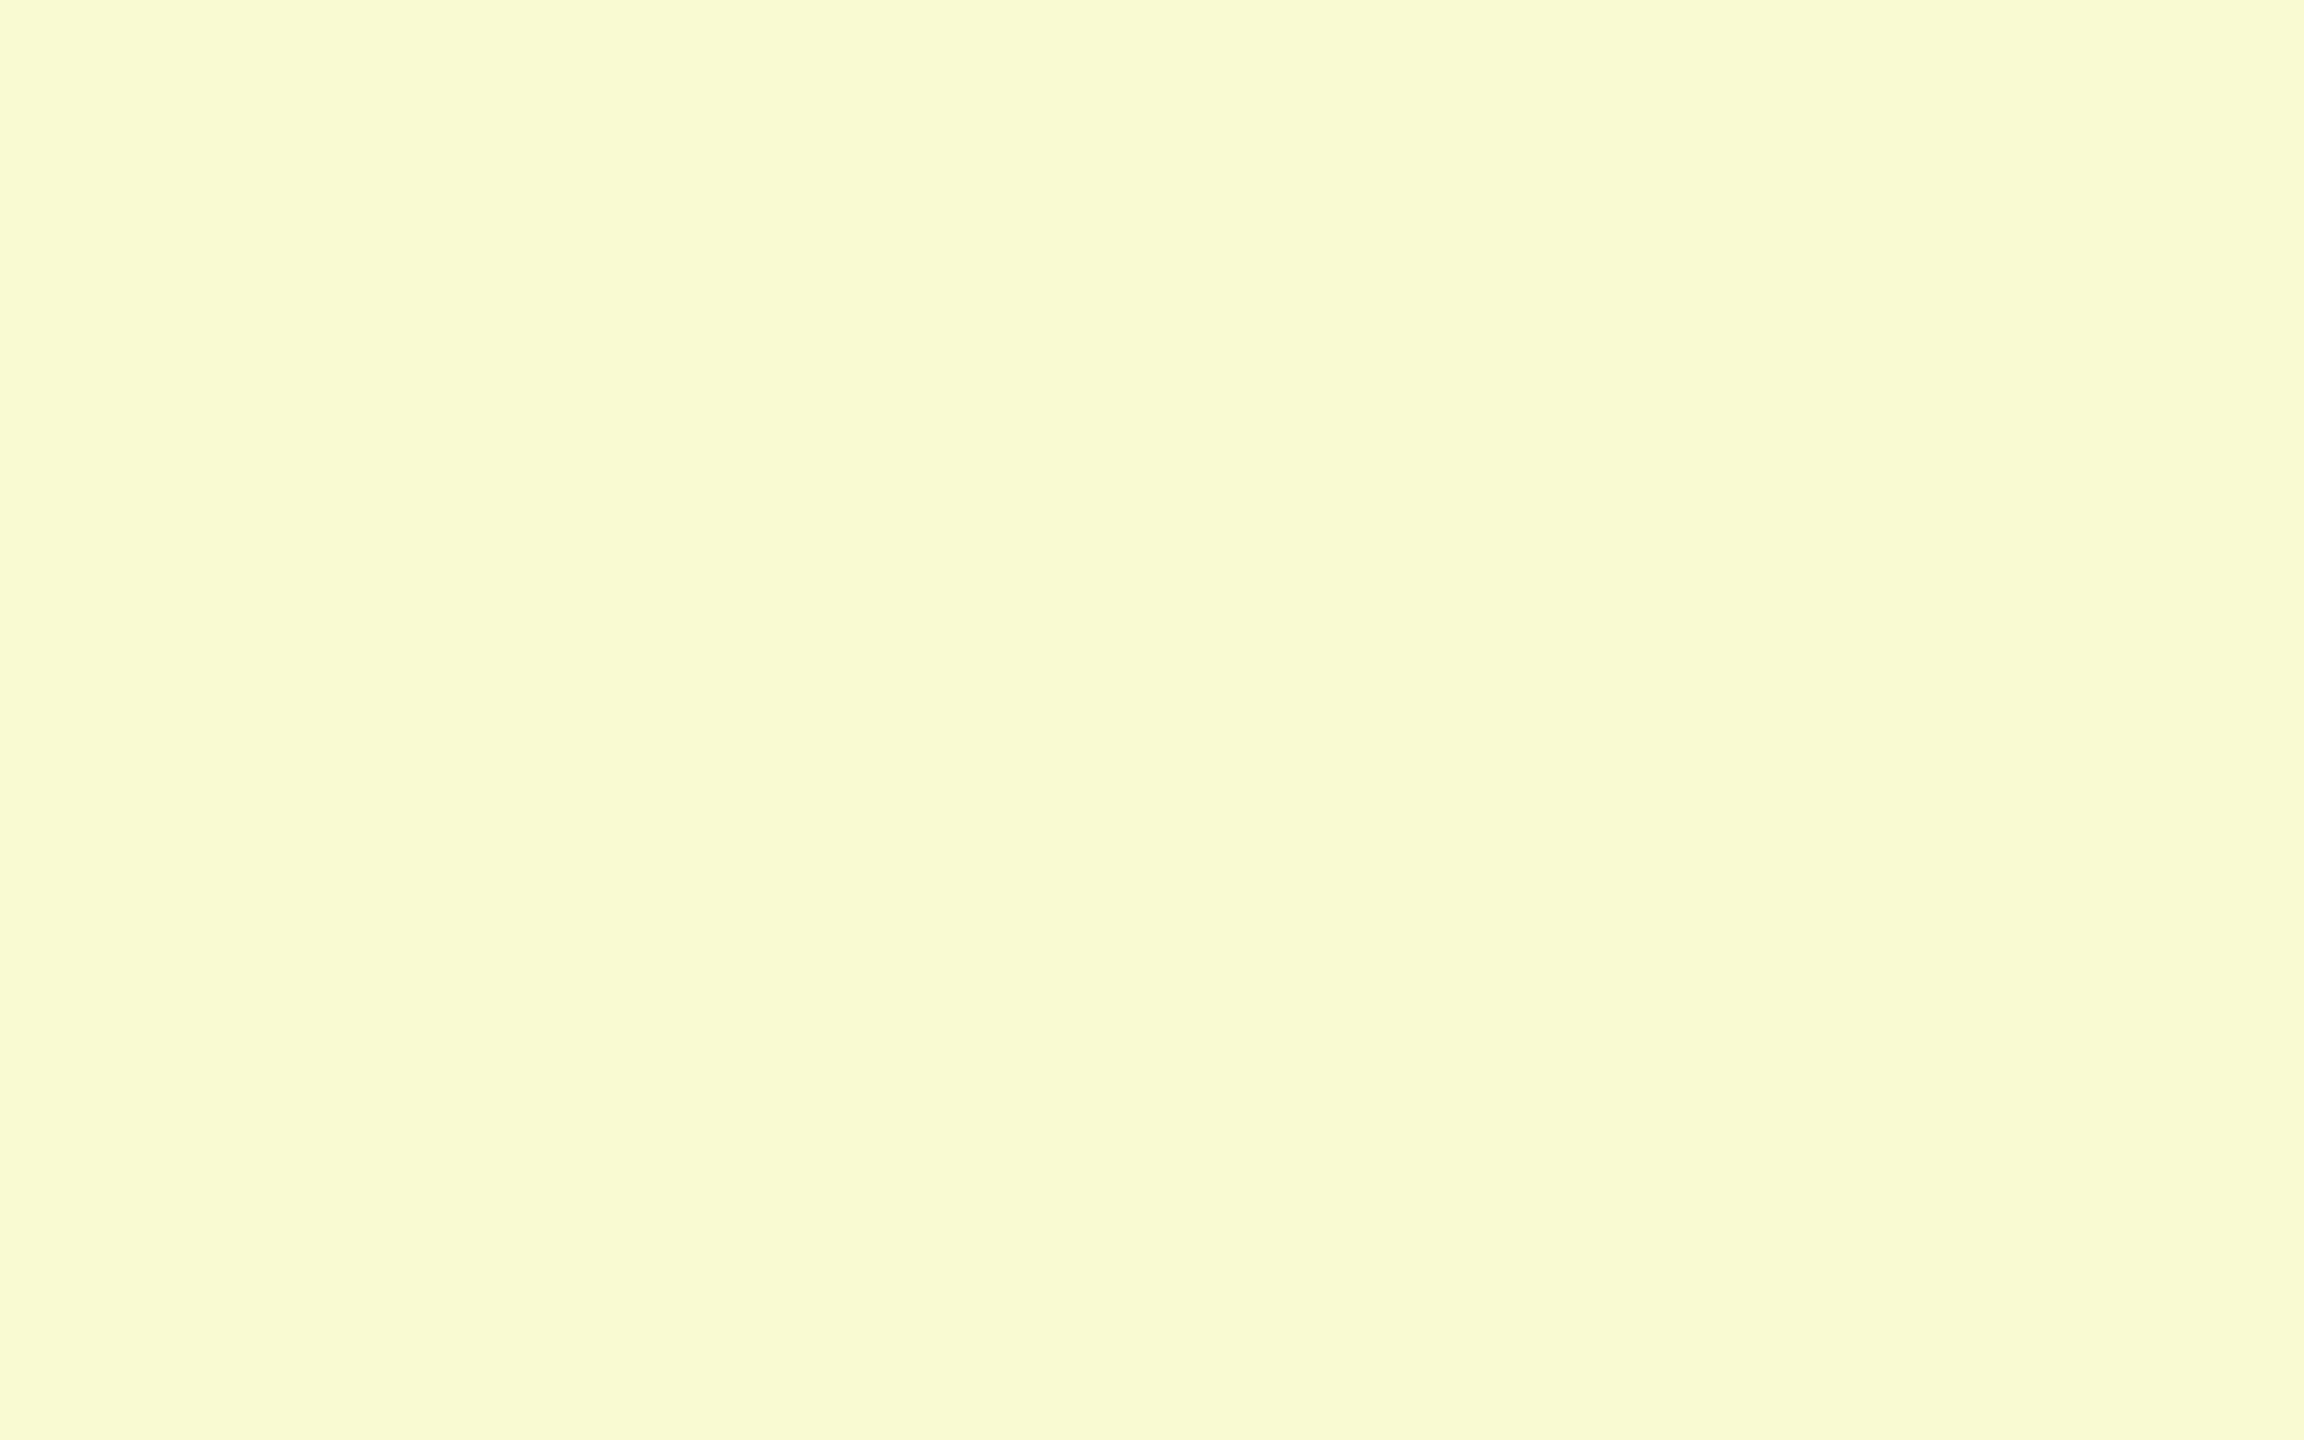 2304x1440 Light Goldenrod Yellow Solid Color Background